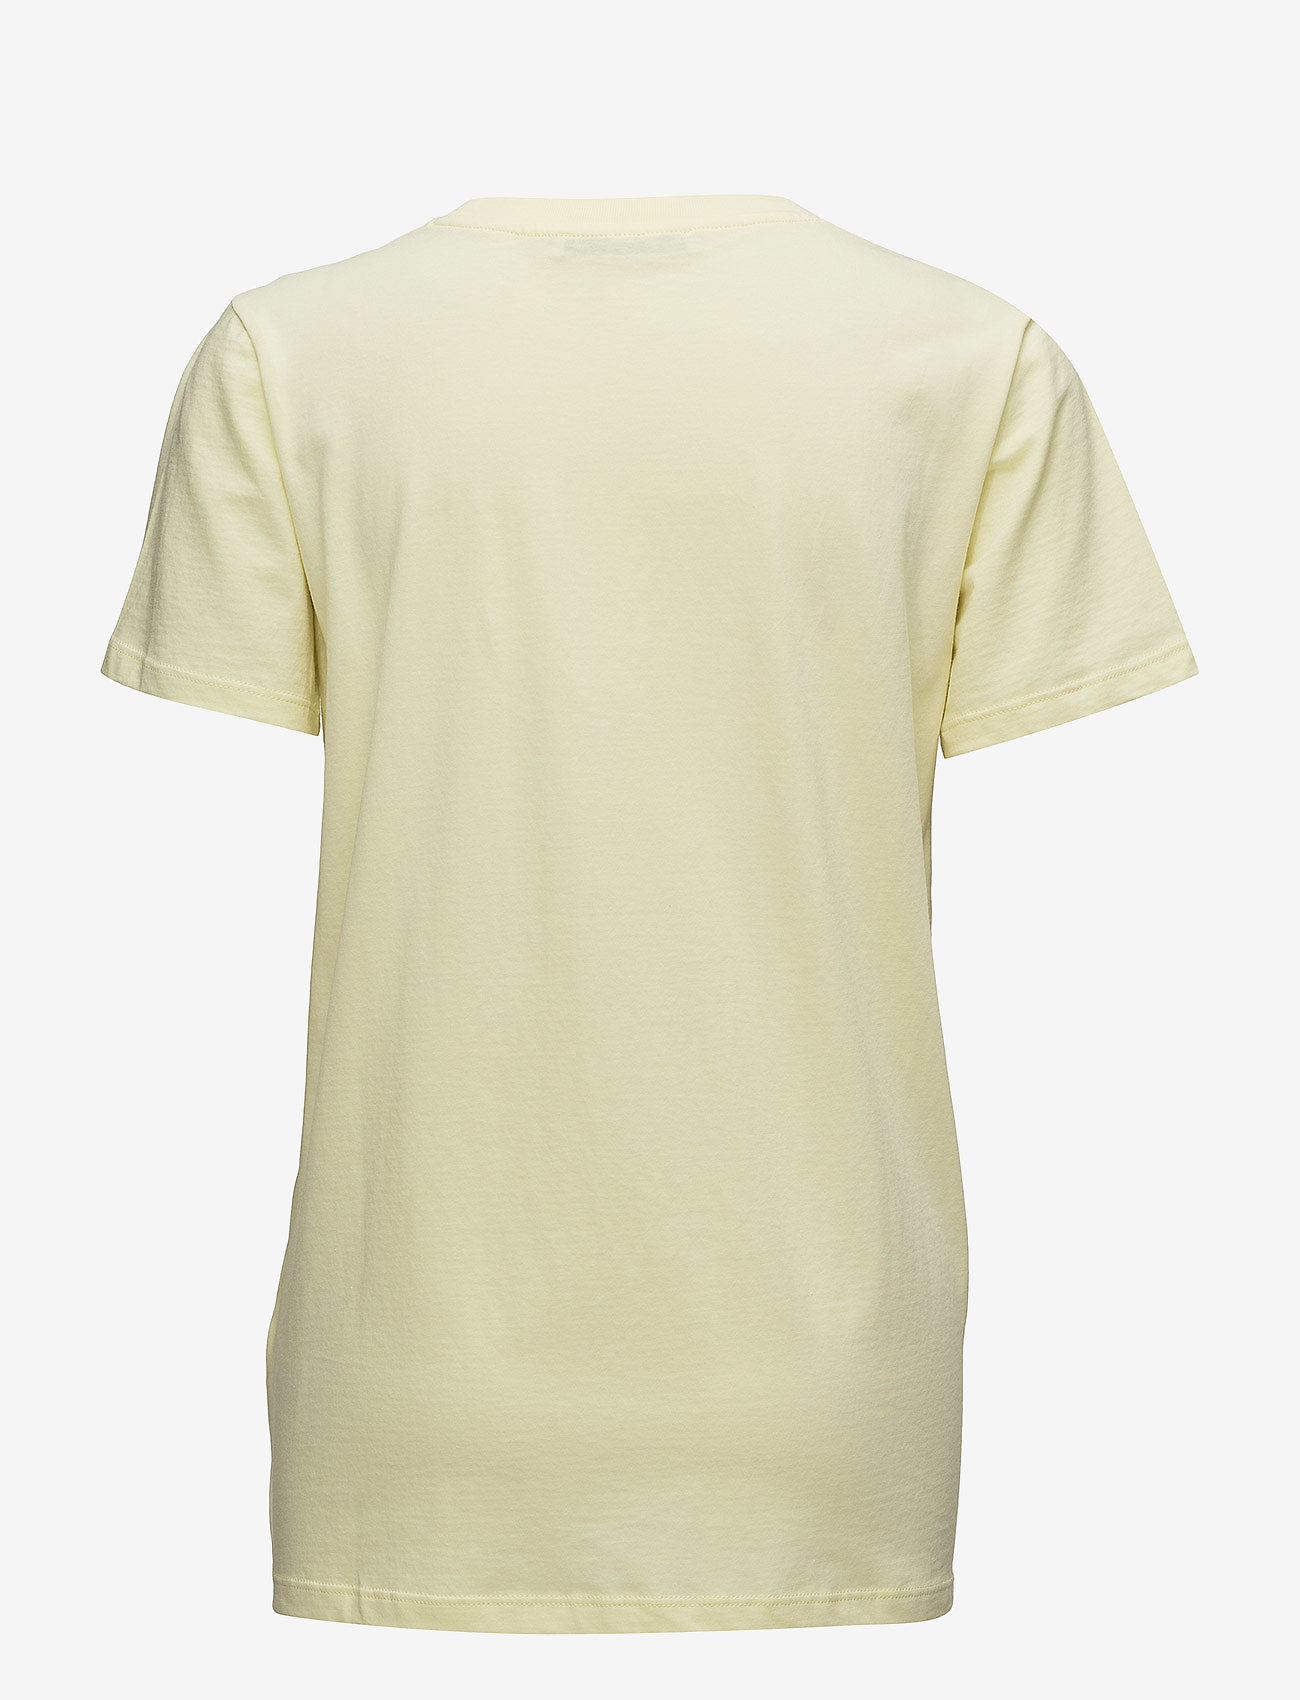 Gestuz - Bowi oz top MS18 - printed t-shirts - yellow pear - 1